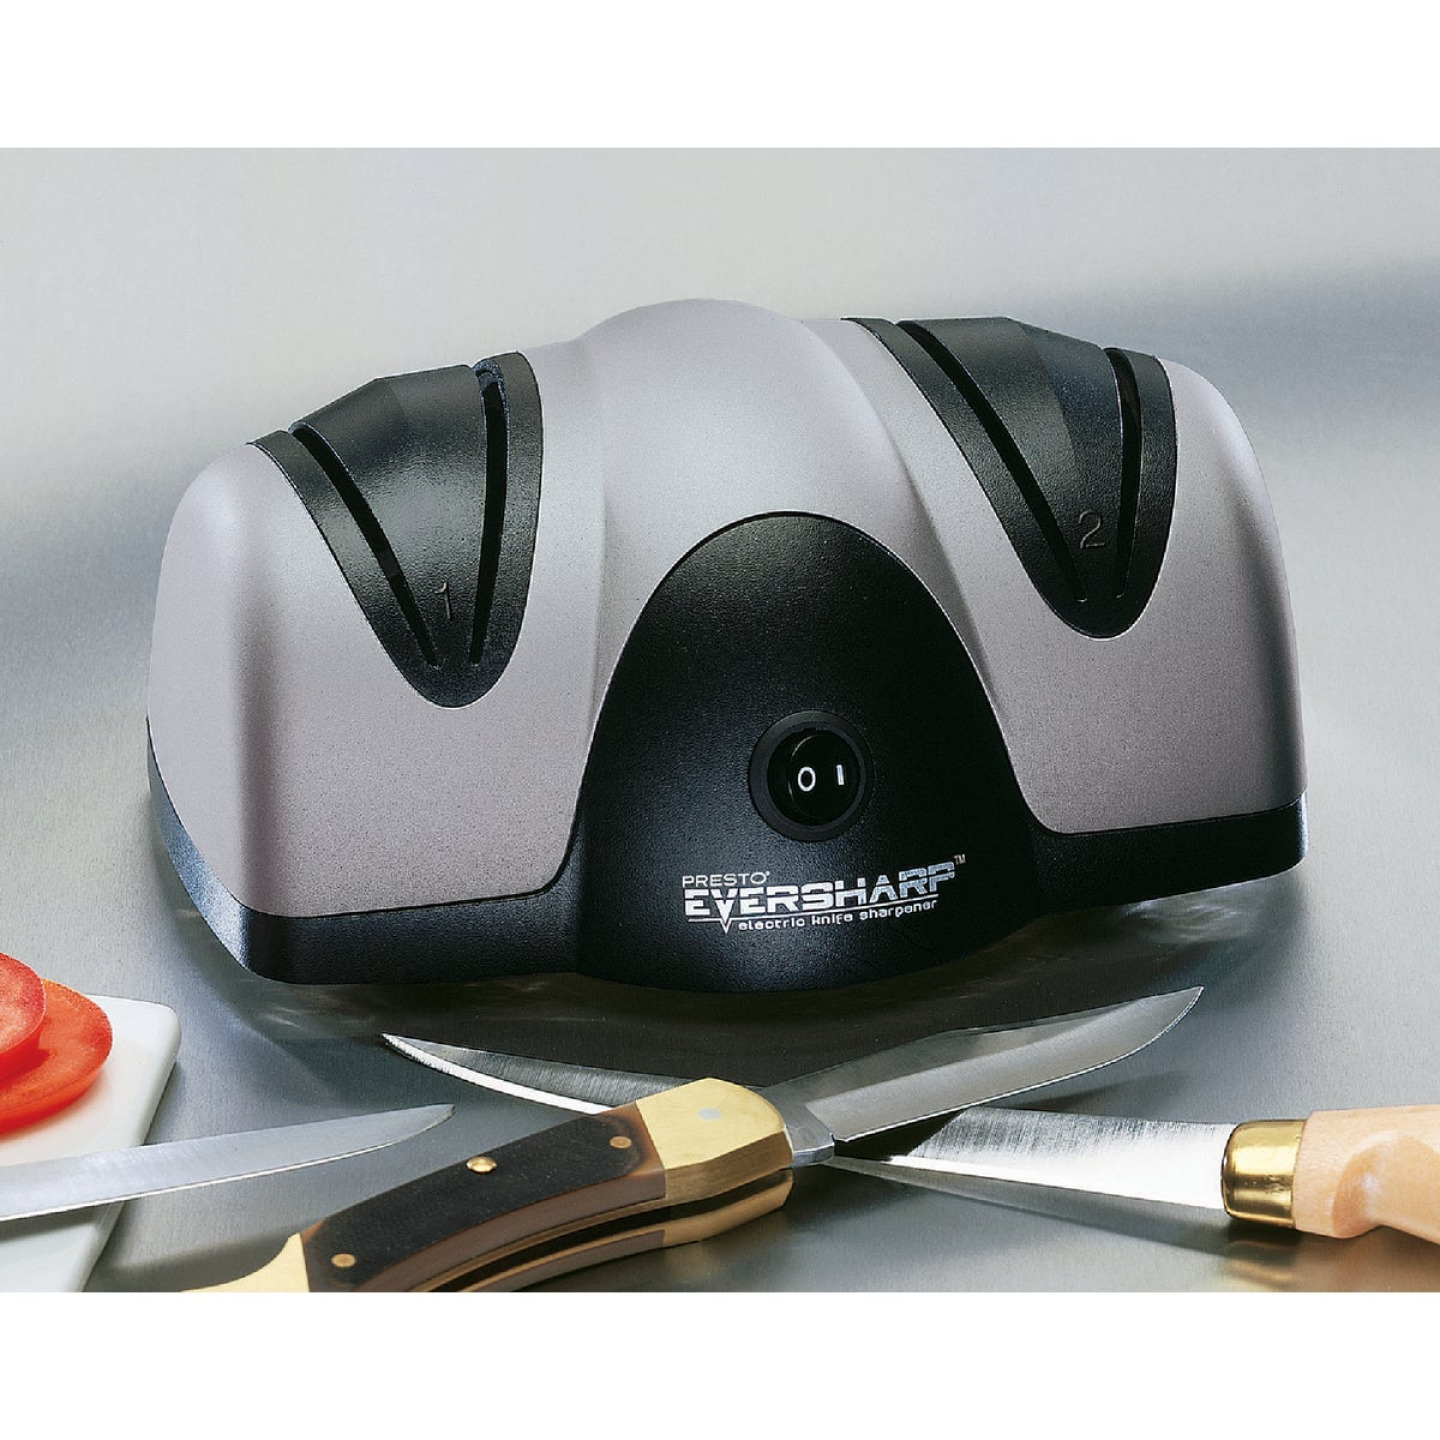 Presto EverSharp 2-Stage Electric Knife Sharpener Image 2